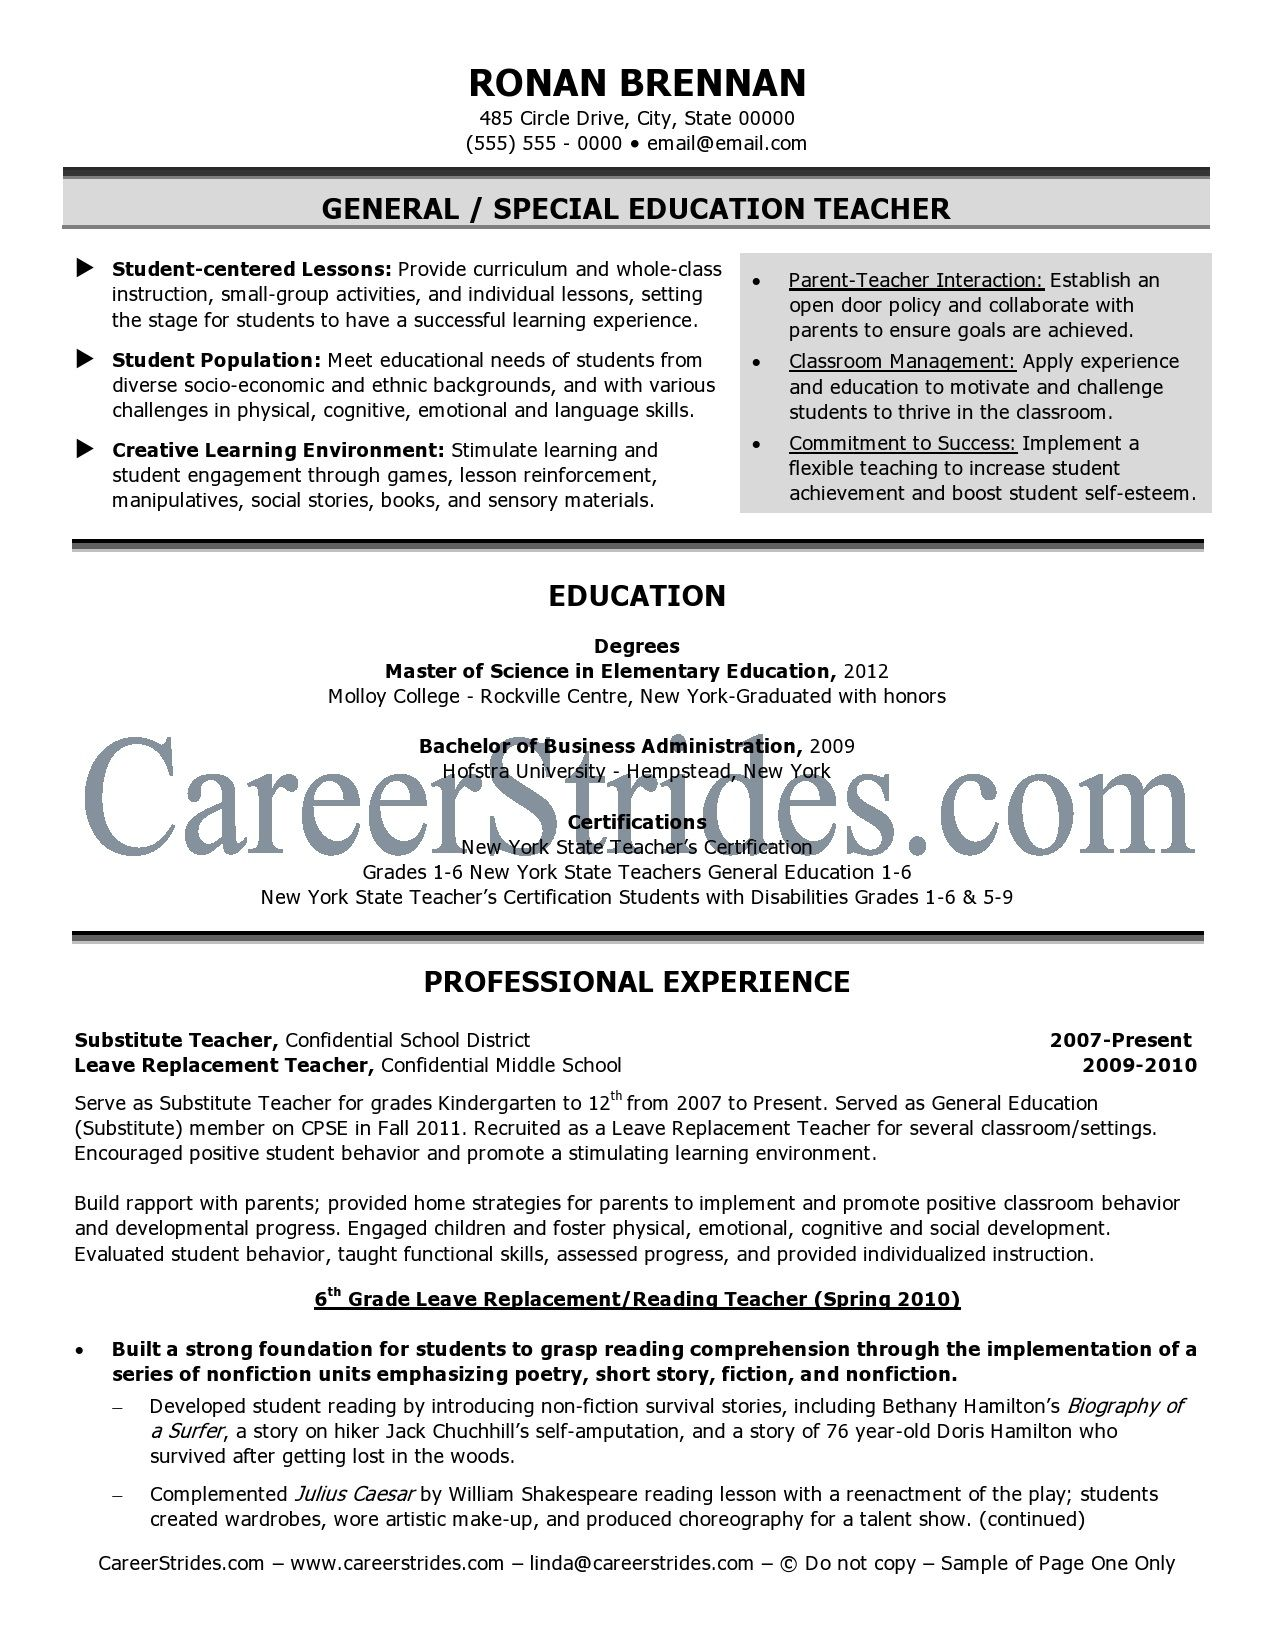 Resume For Elementary Teacher Pin Oleh Jobresume Di Resume Career Termplate Free